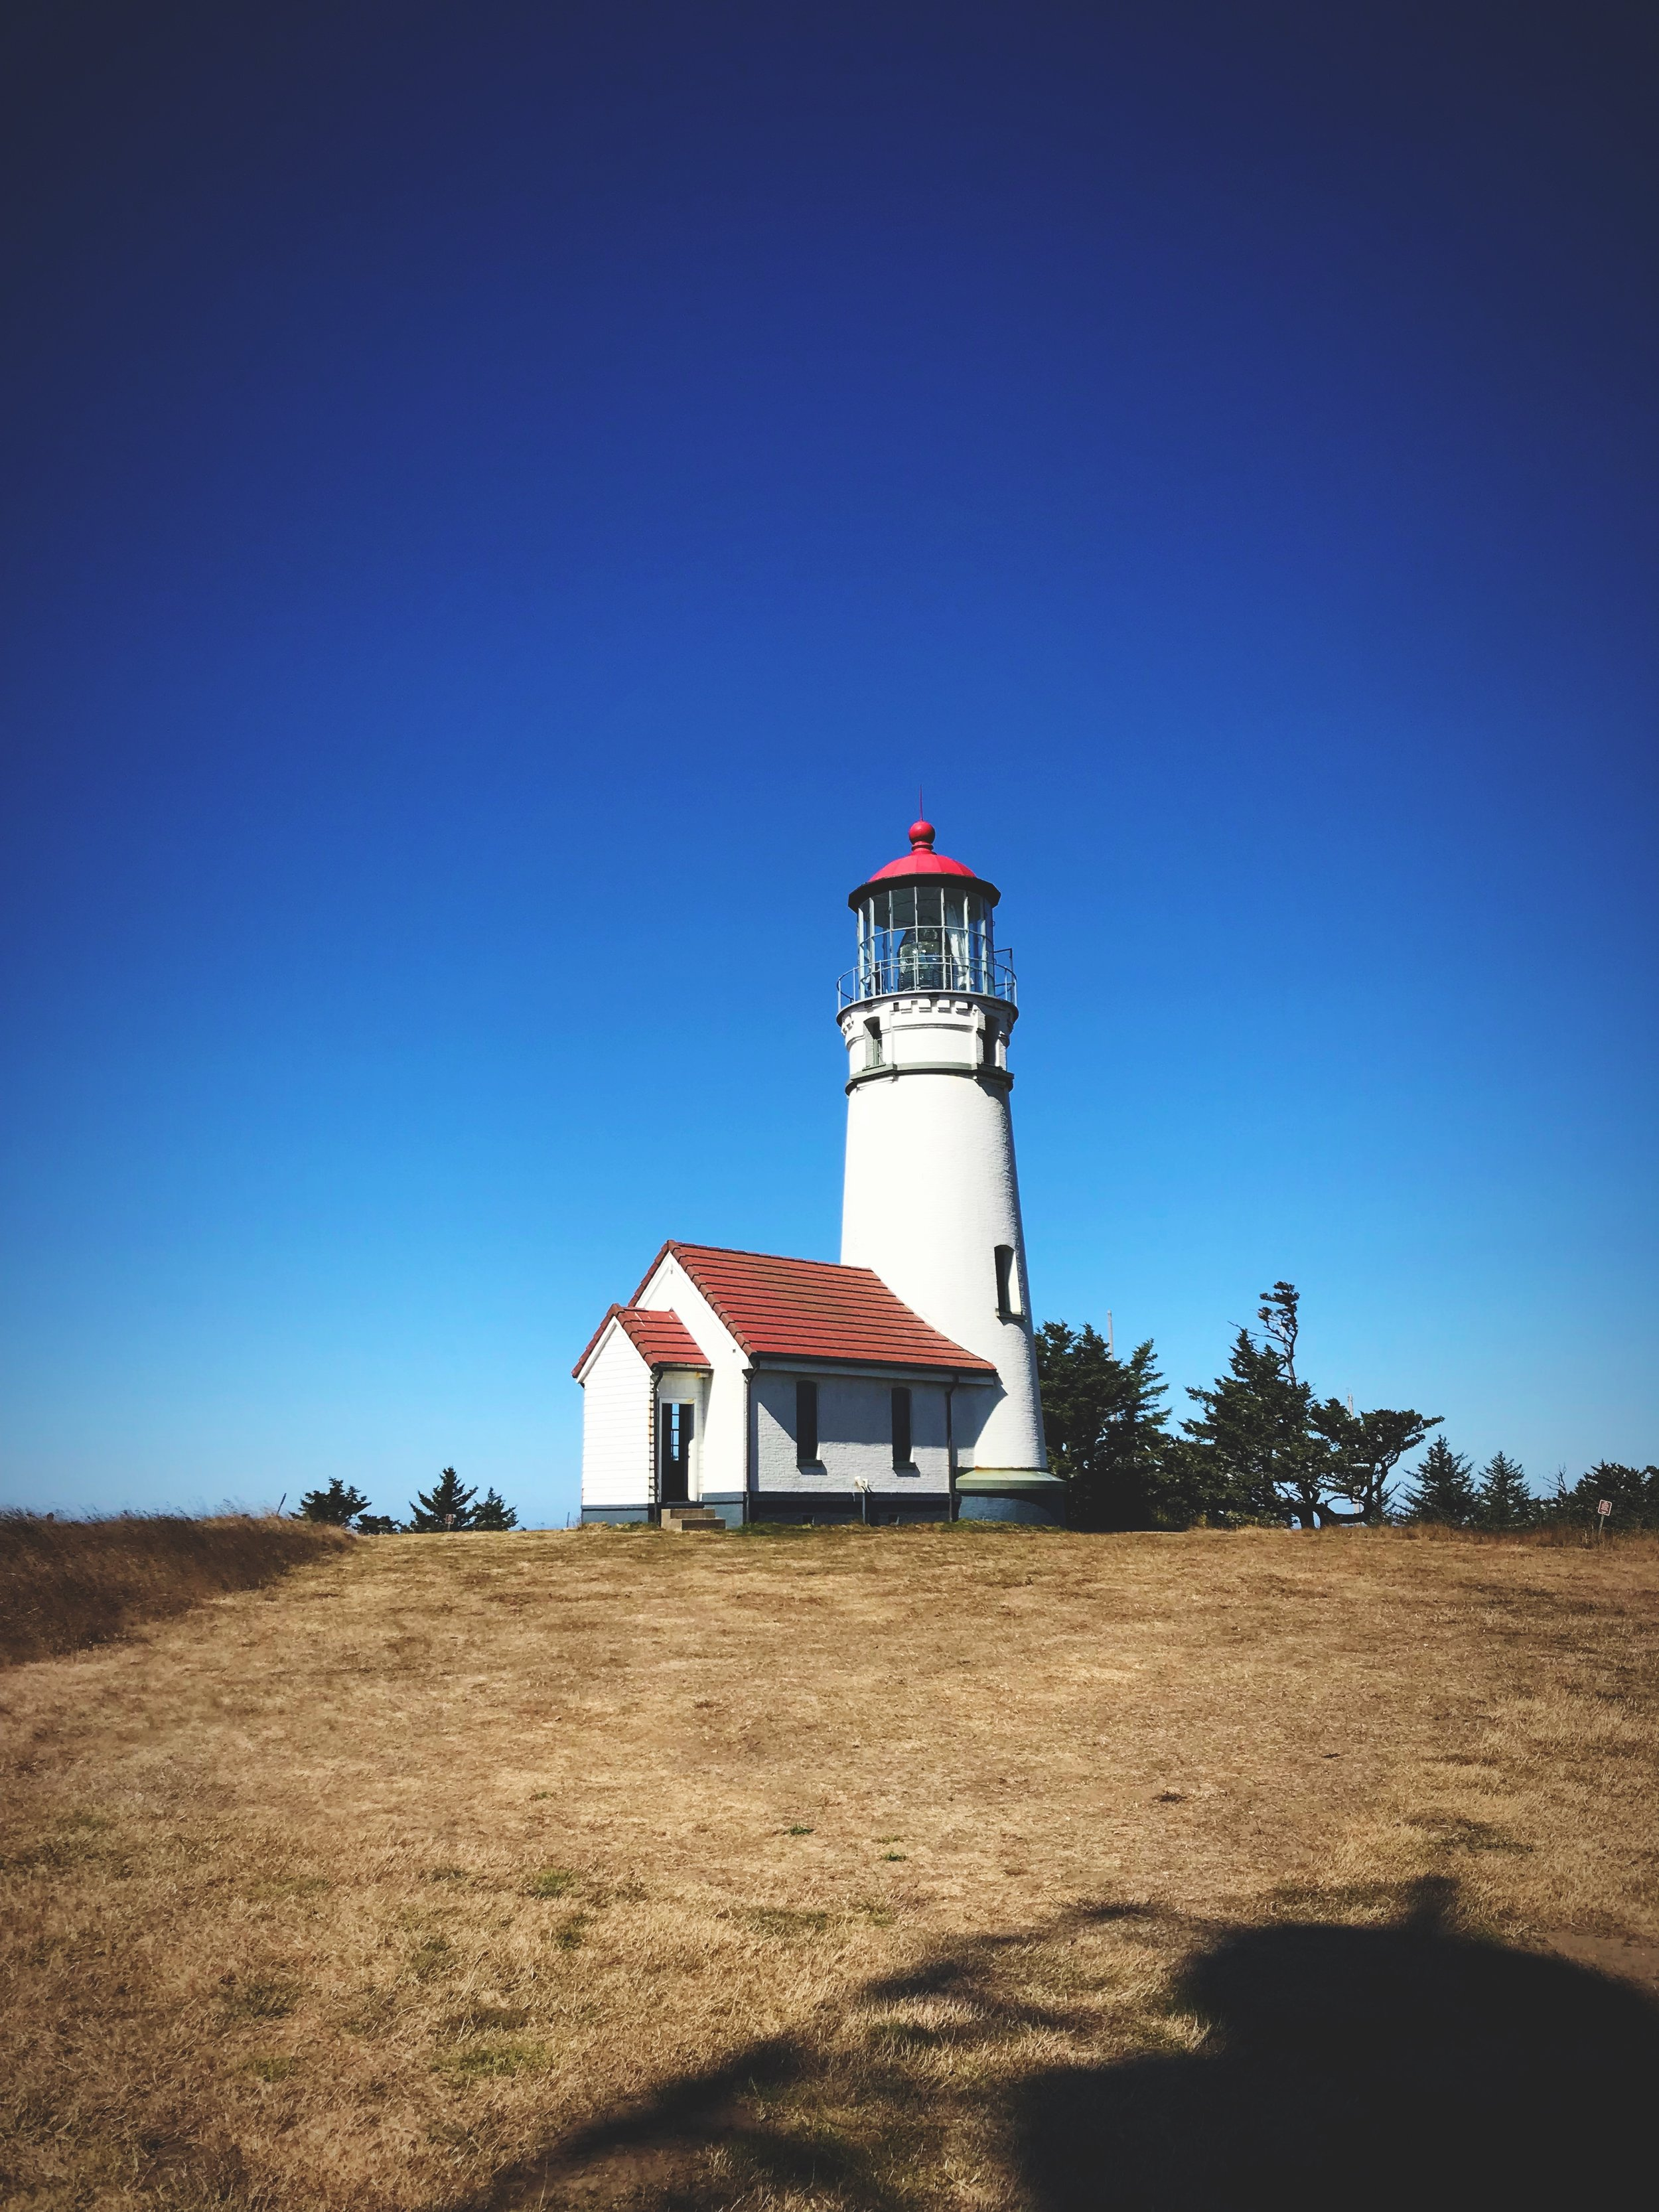 The Cape Blanco Lighthouse is the oldest on the coast of Oregon.